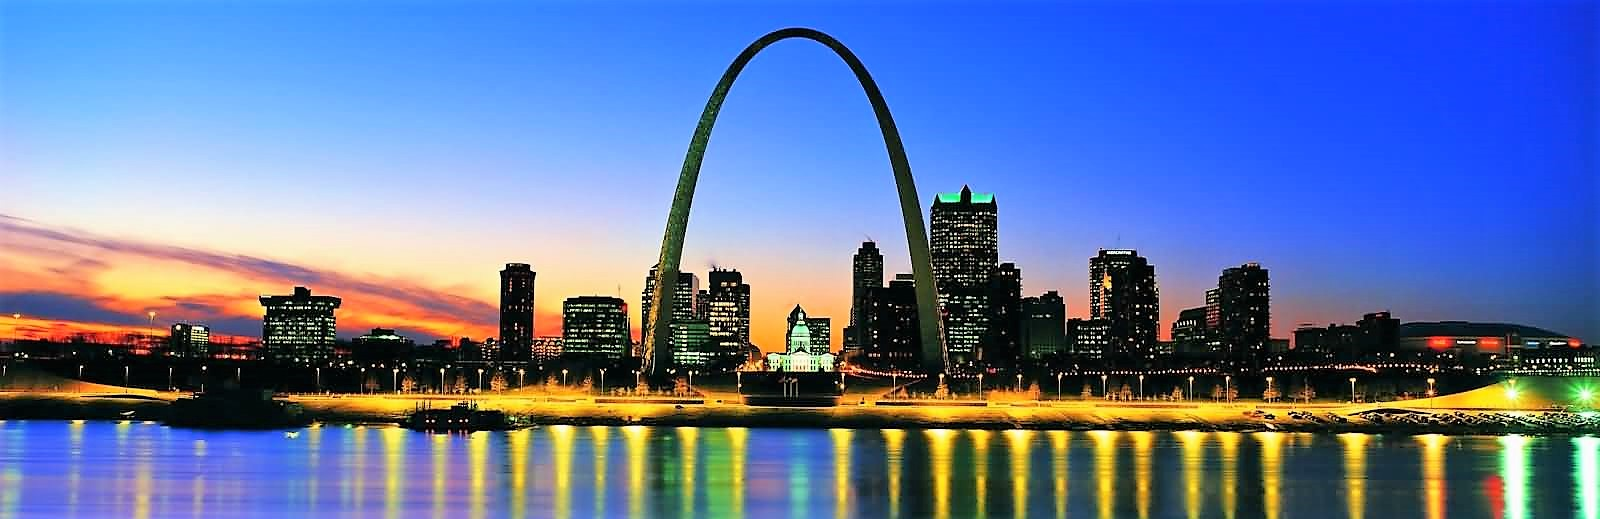 4.25.17. St. Louis Chapter Meeting